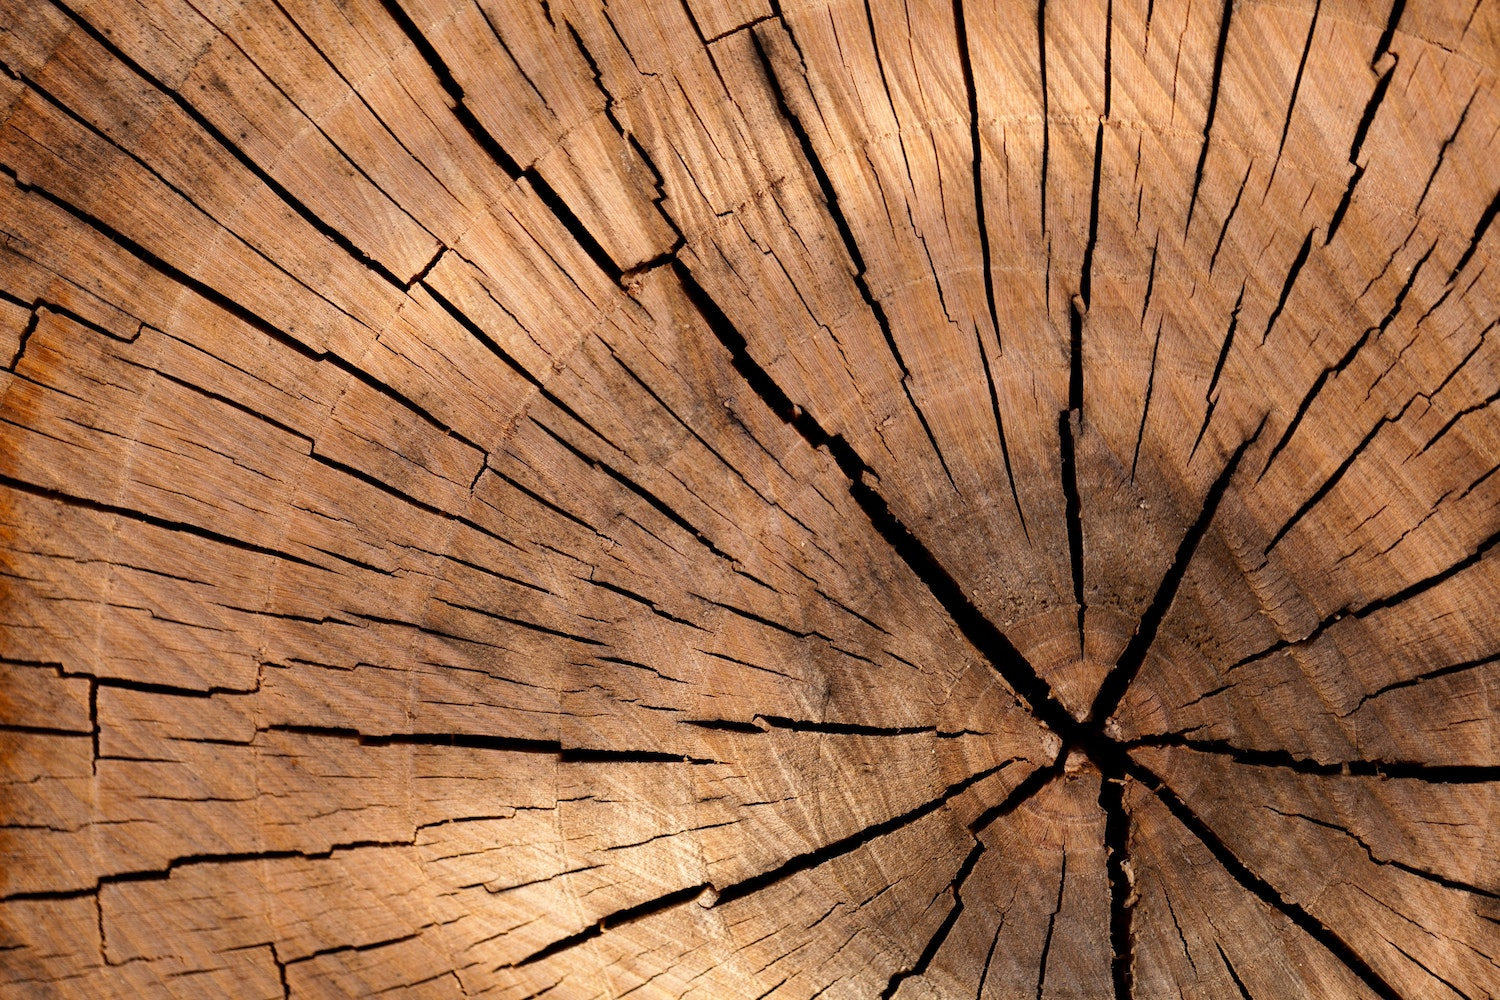 tree rings close up